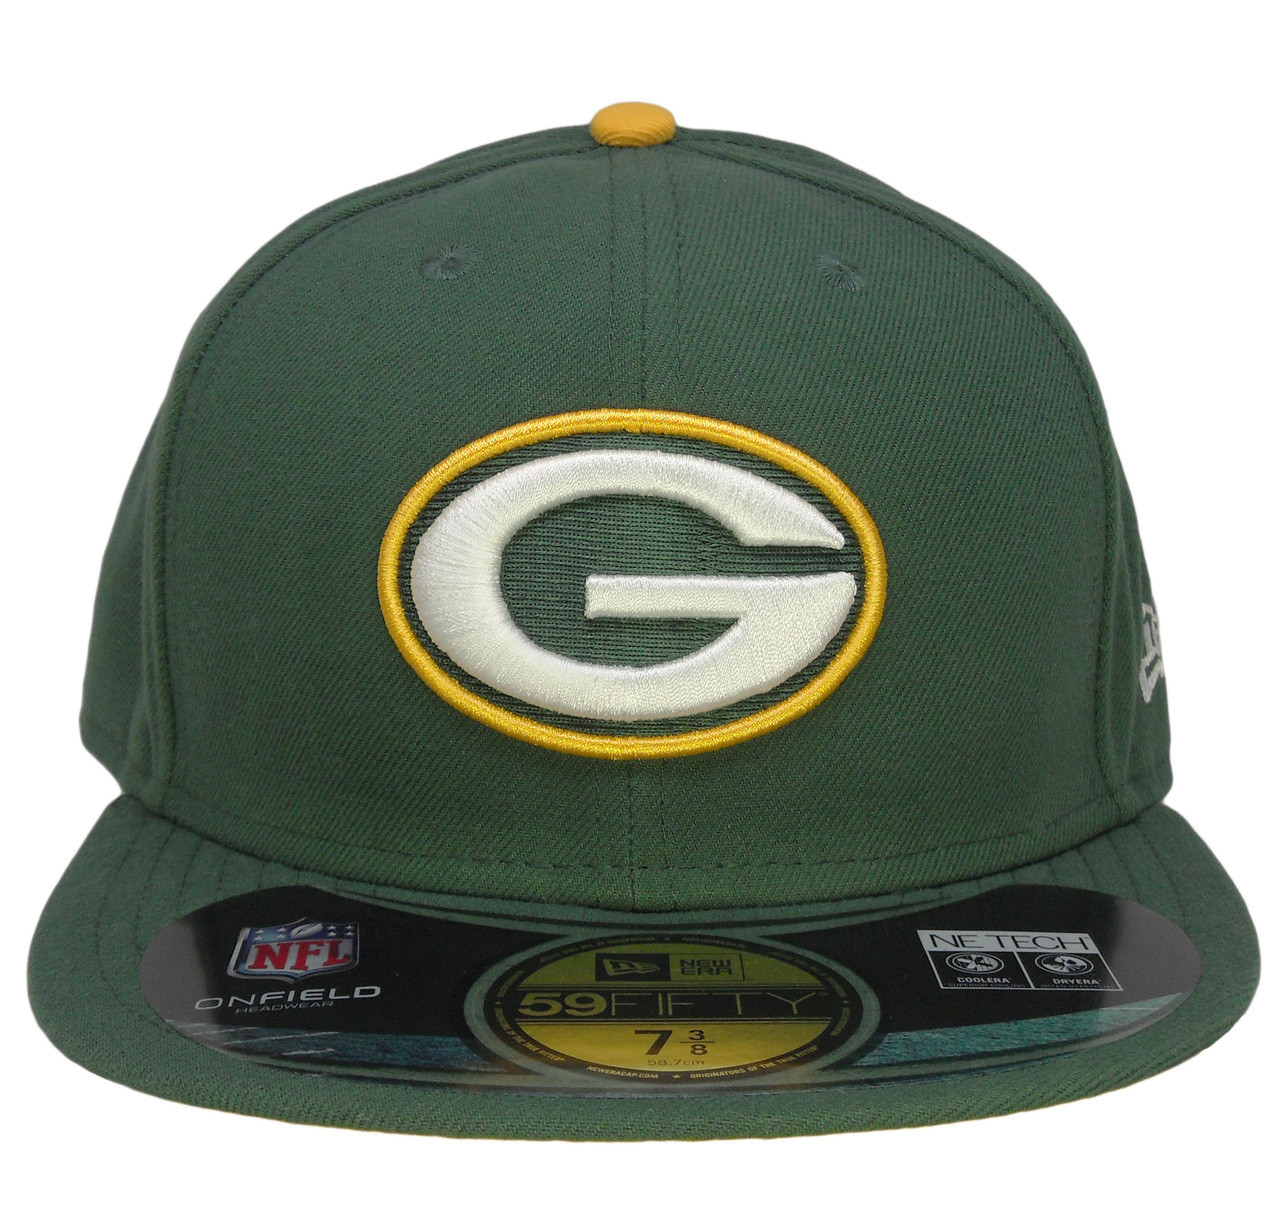 4a3b5b25 Green Bay Packers New Era Onfield Fitted Hat - Forest Green, Yellow, White